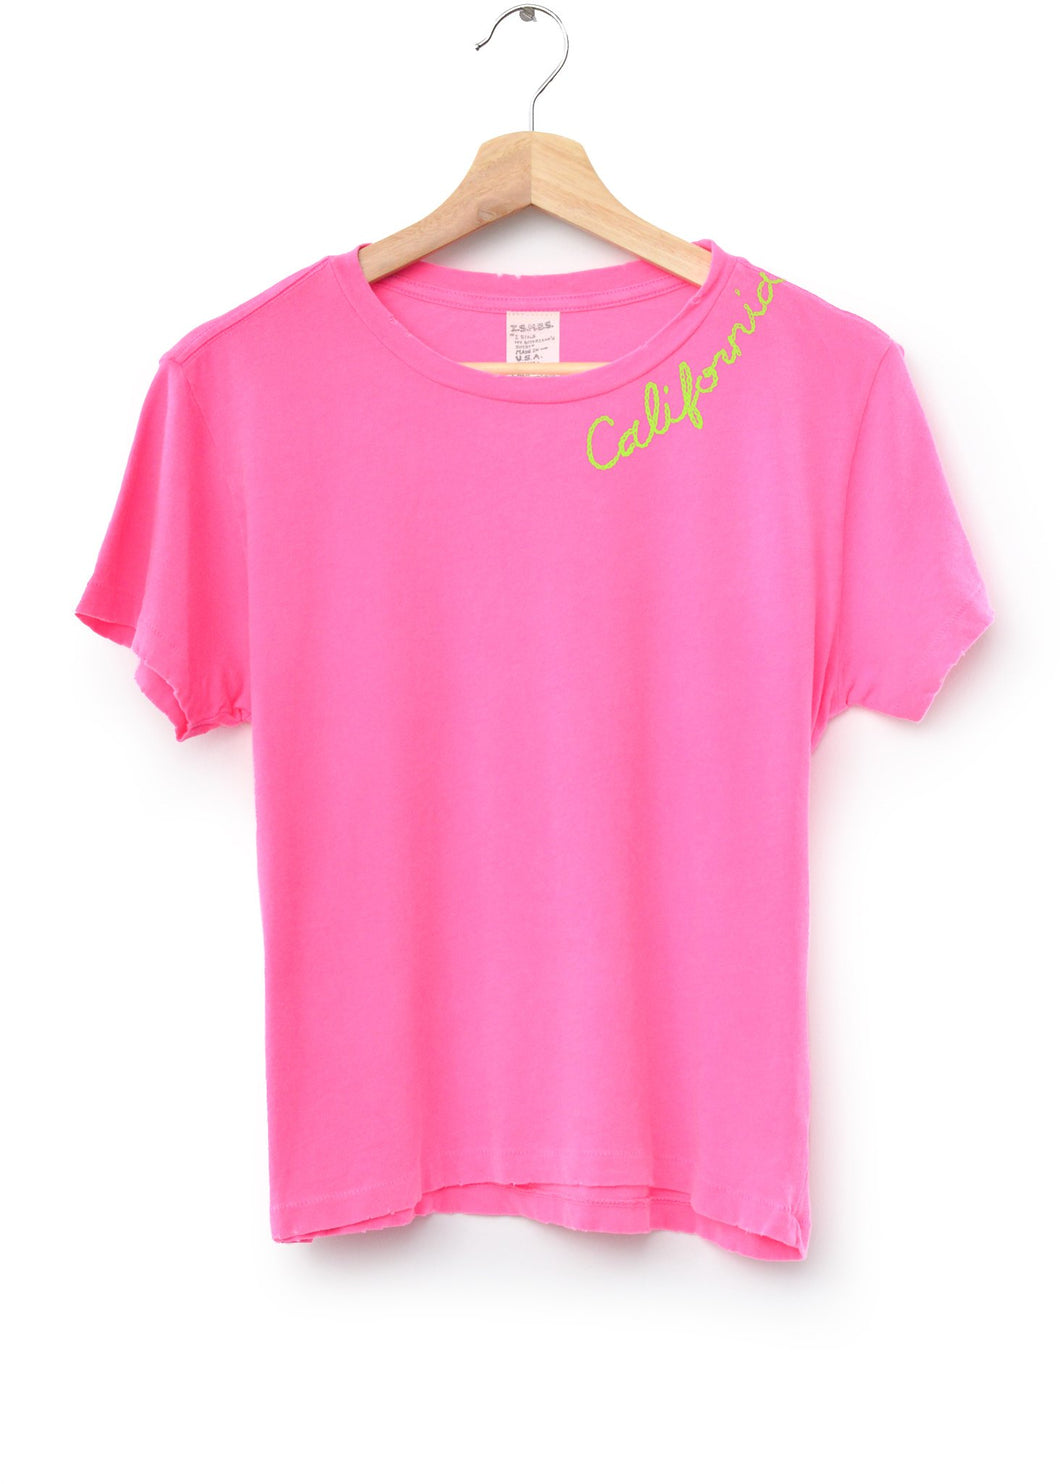 NEON PINK CATALINA S/S TEE WITH CUSTOM HAND EMBROIDERY